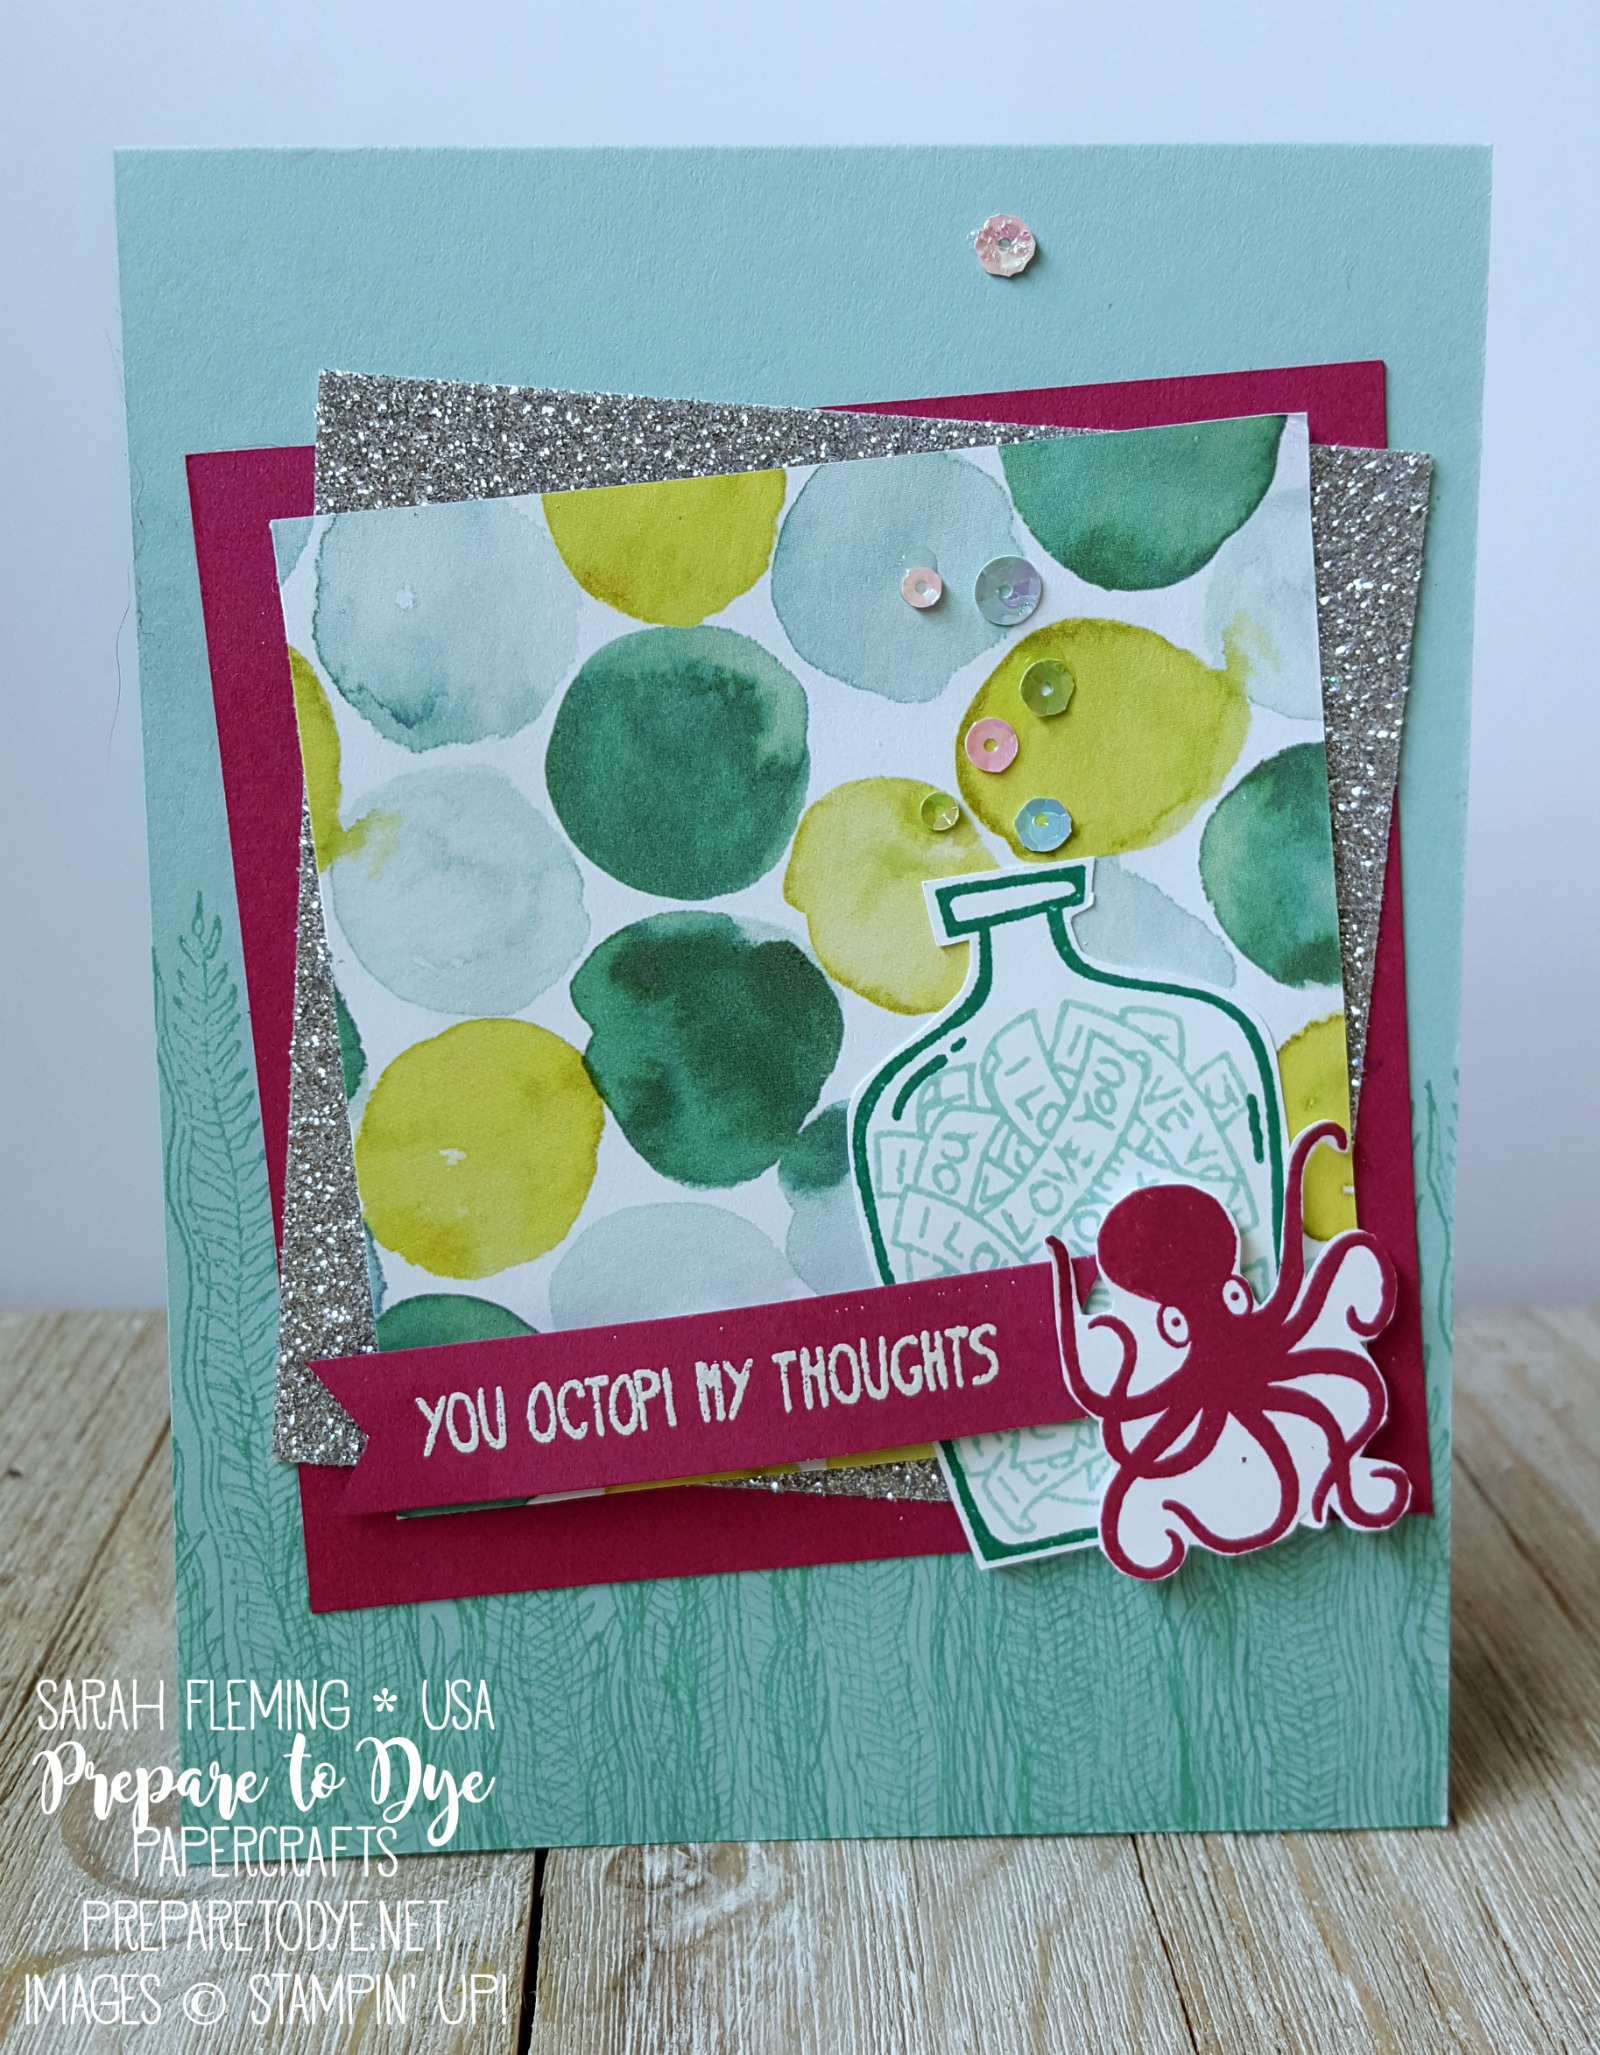 Stampin' Up! Message in a Bottle and Magical Mermaid stamps with Naturally Eclectic designer series paper - Stampin' Dreams Blog Hop - Sarah Fleming - Prepare to Dye Papercrafts